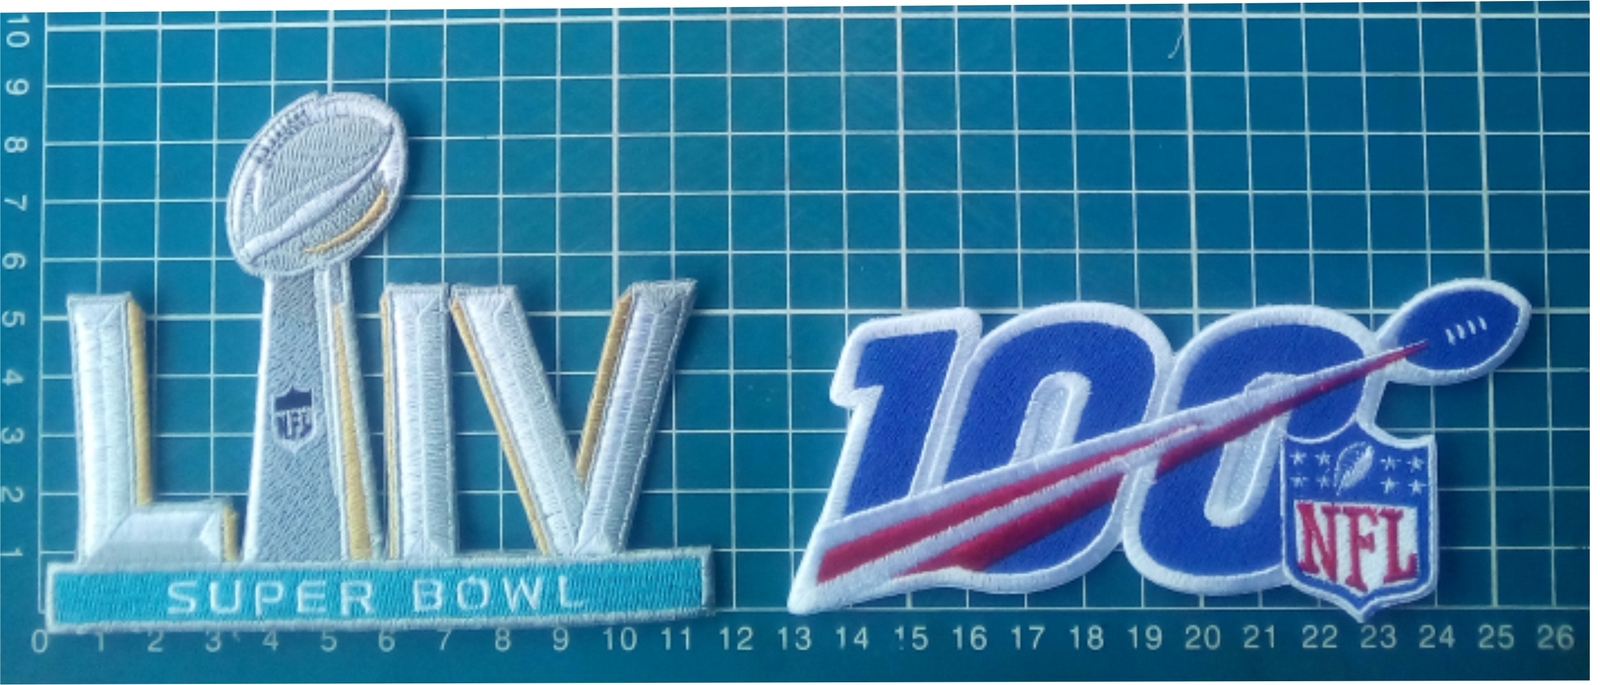 Primary image for NFL100 anniversary centennial season Football superbowl 54 LIV Jersey Patch